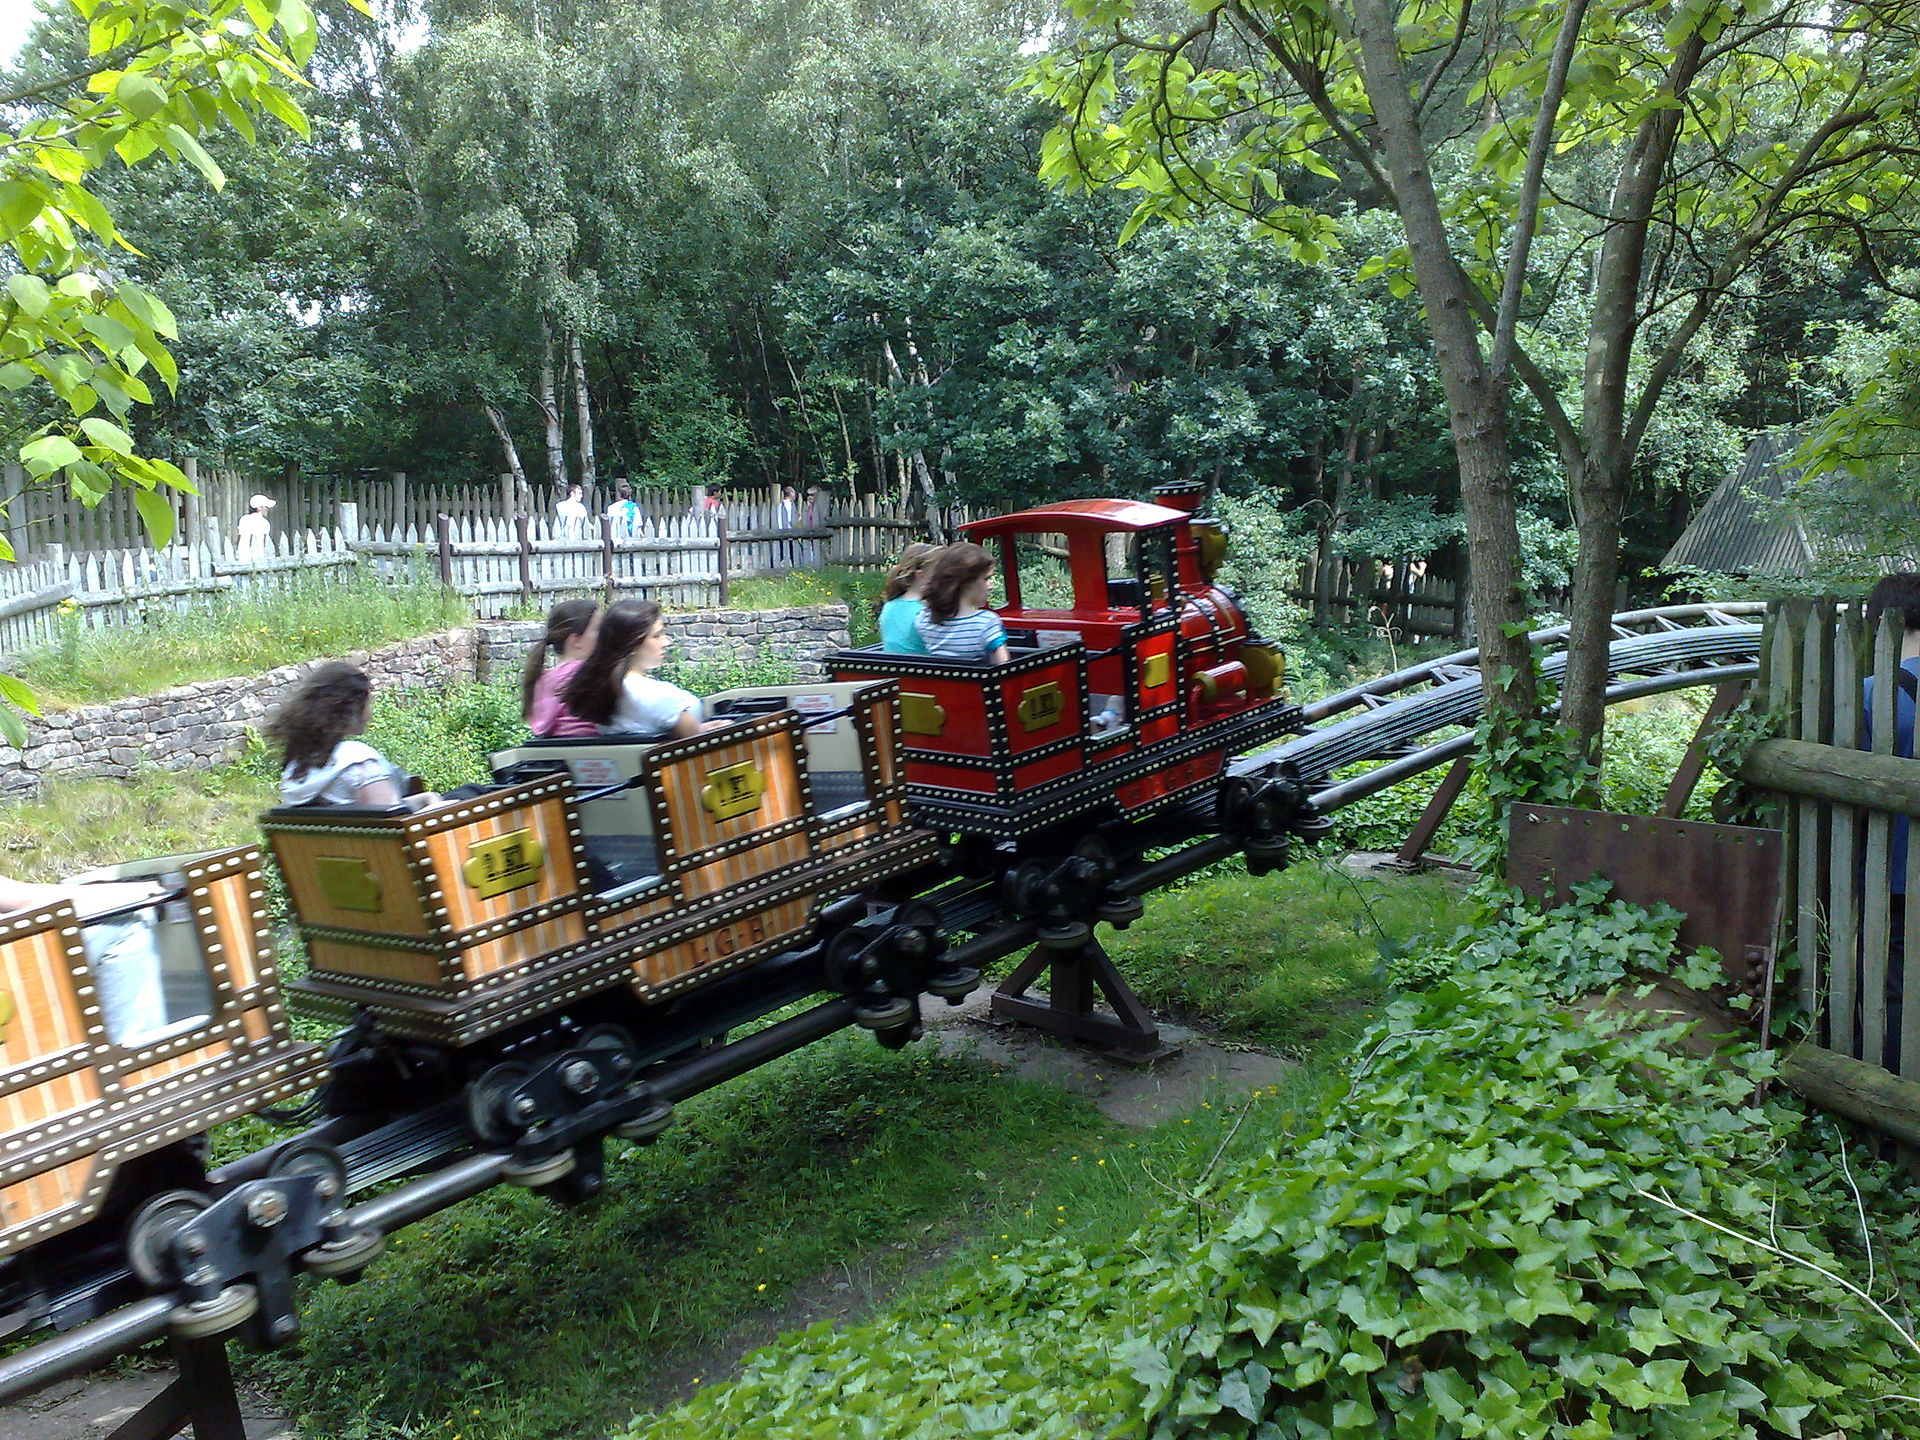 Runaway Mine Train Alton Towers Wikipedia